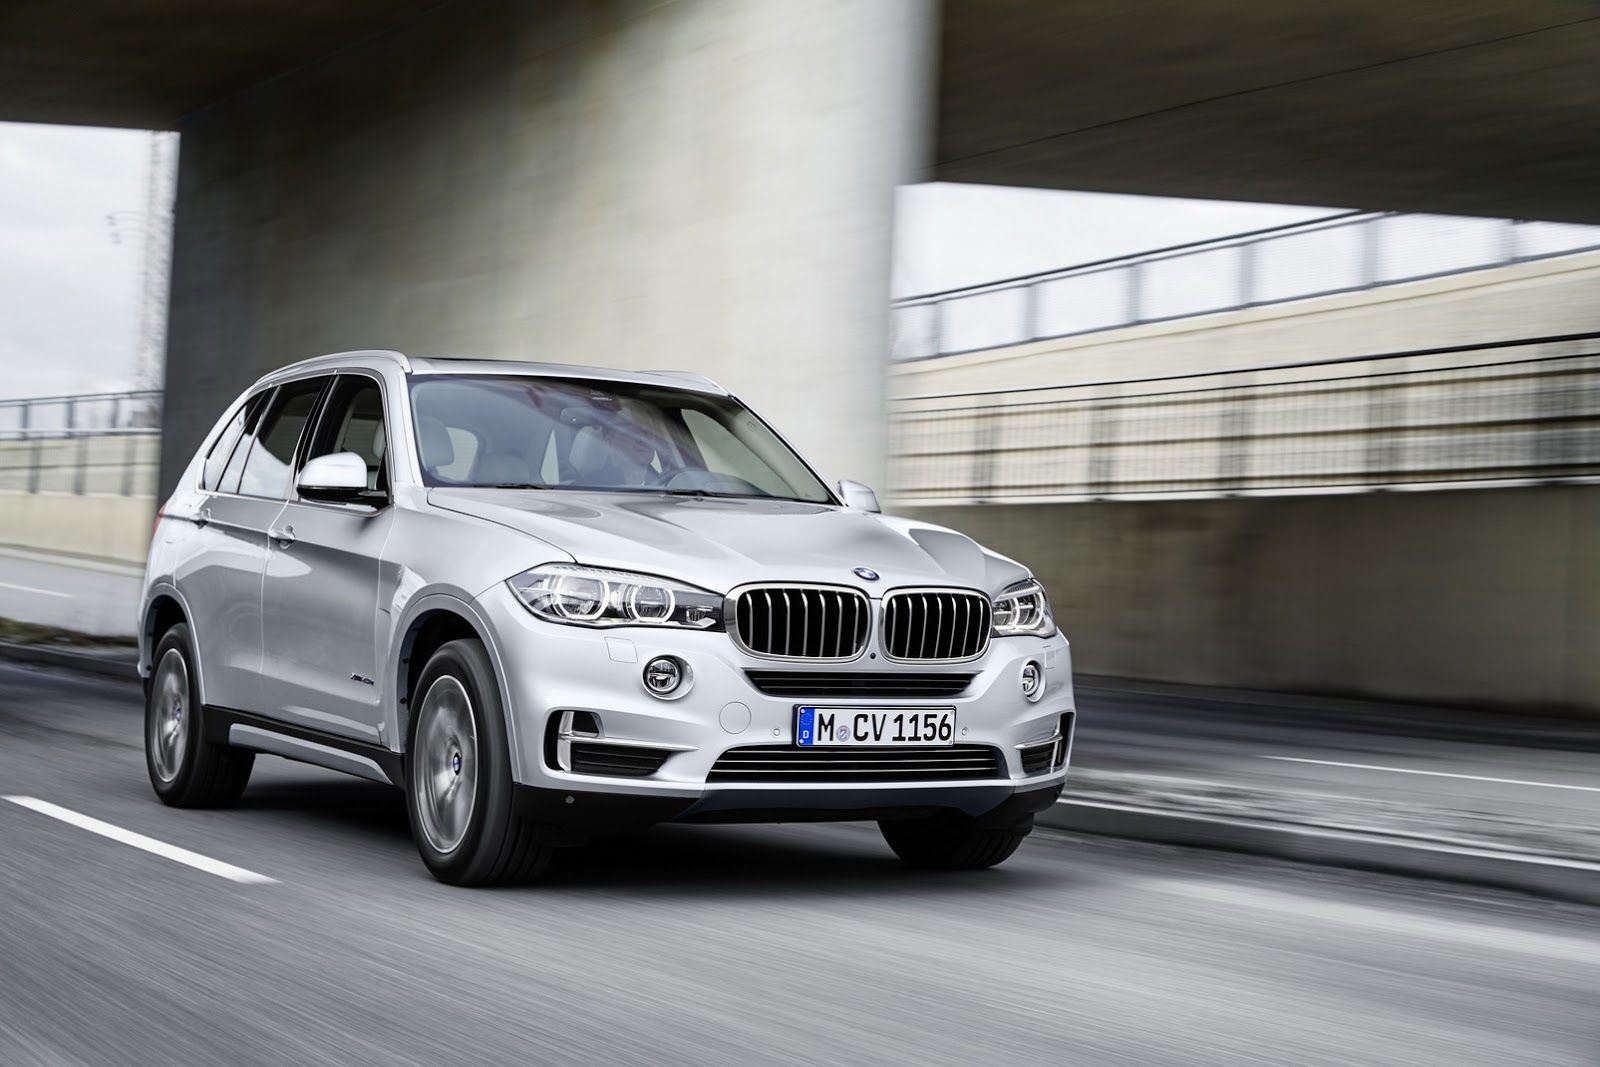 Bmw S 4 Cylinder X5 Xdrive40e Plug In Hybrid Bmw X5 Bmw Luxury Car Brands